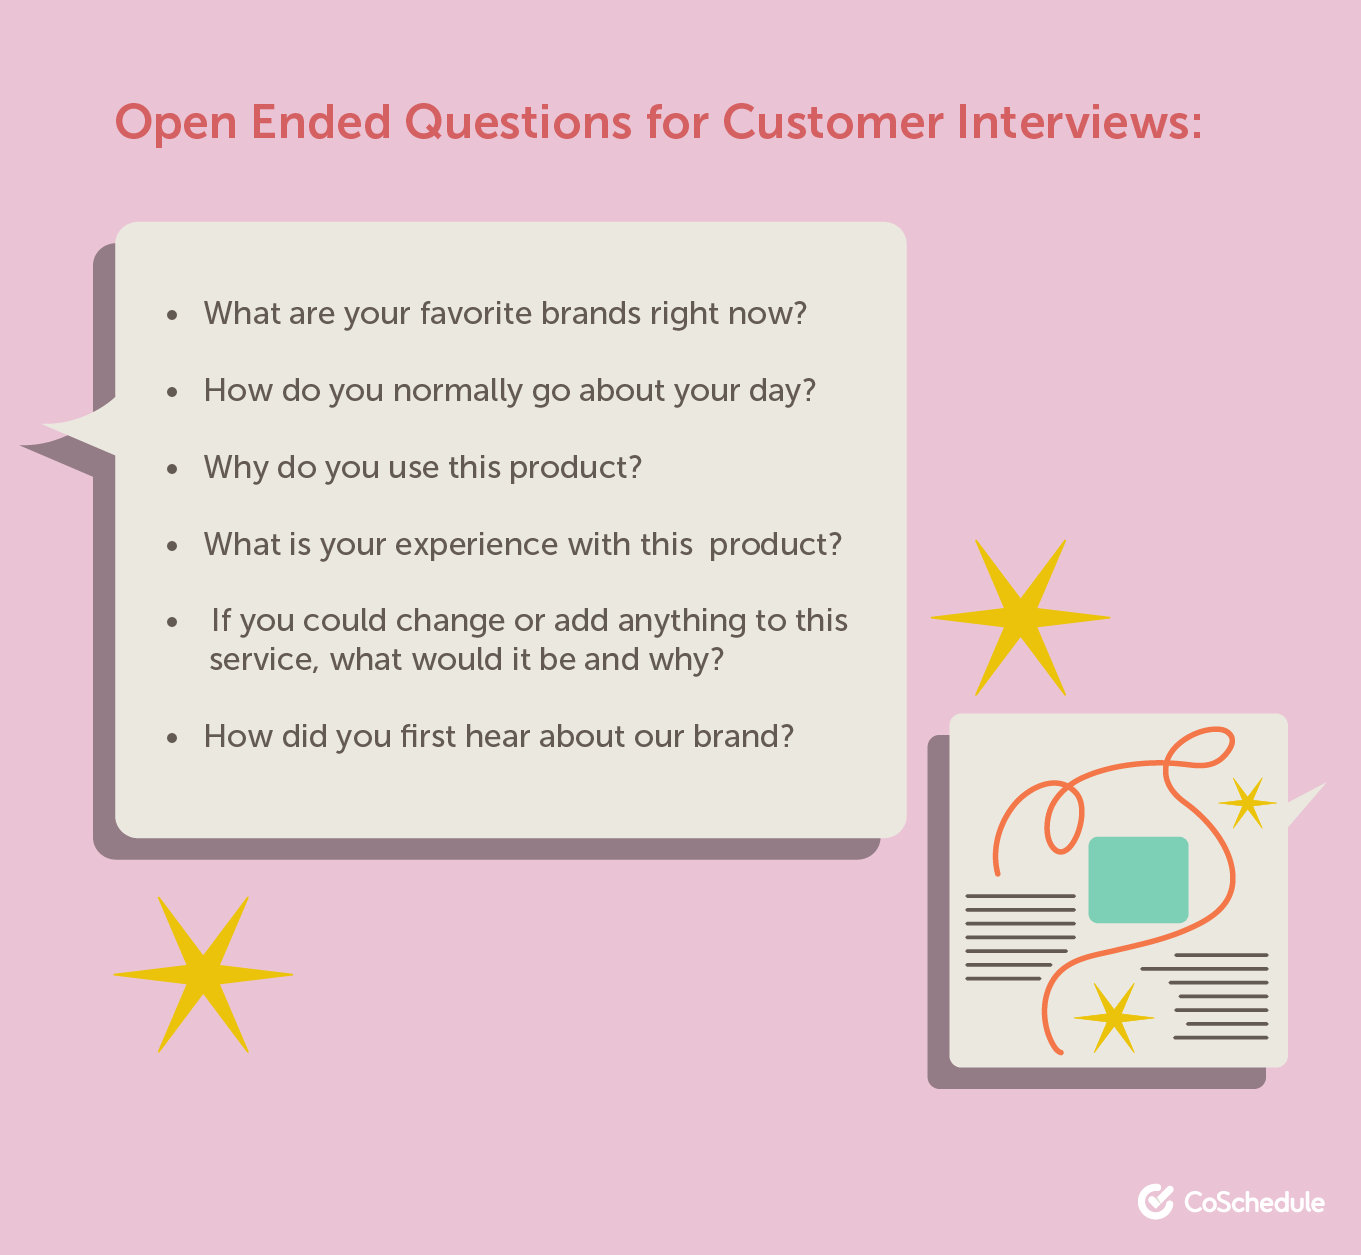 Open ended questions for interviews